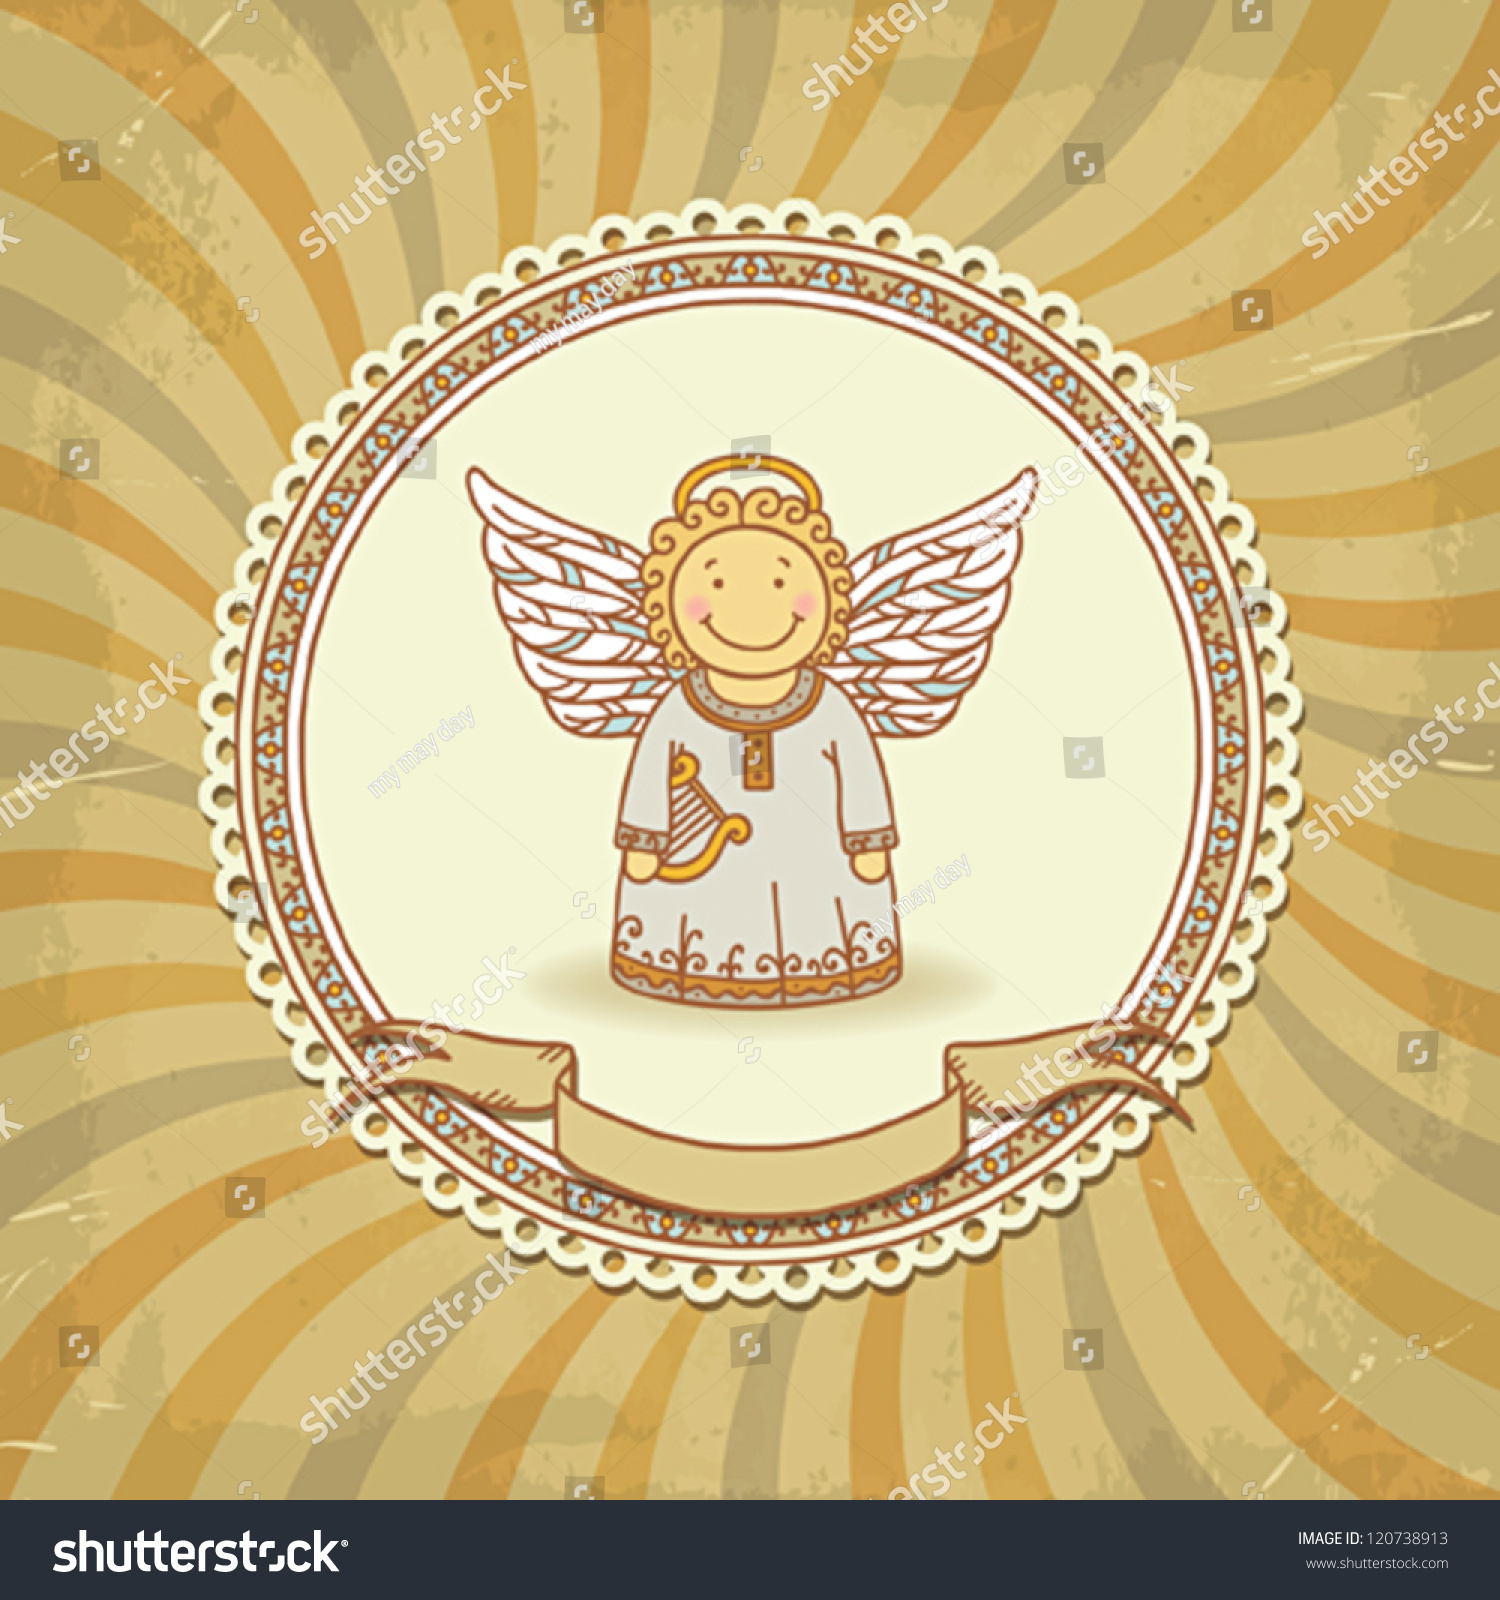 Name Day - Angel Day. Congratulations on Angel Day 46